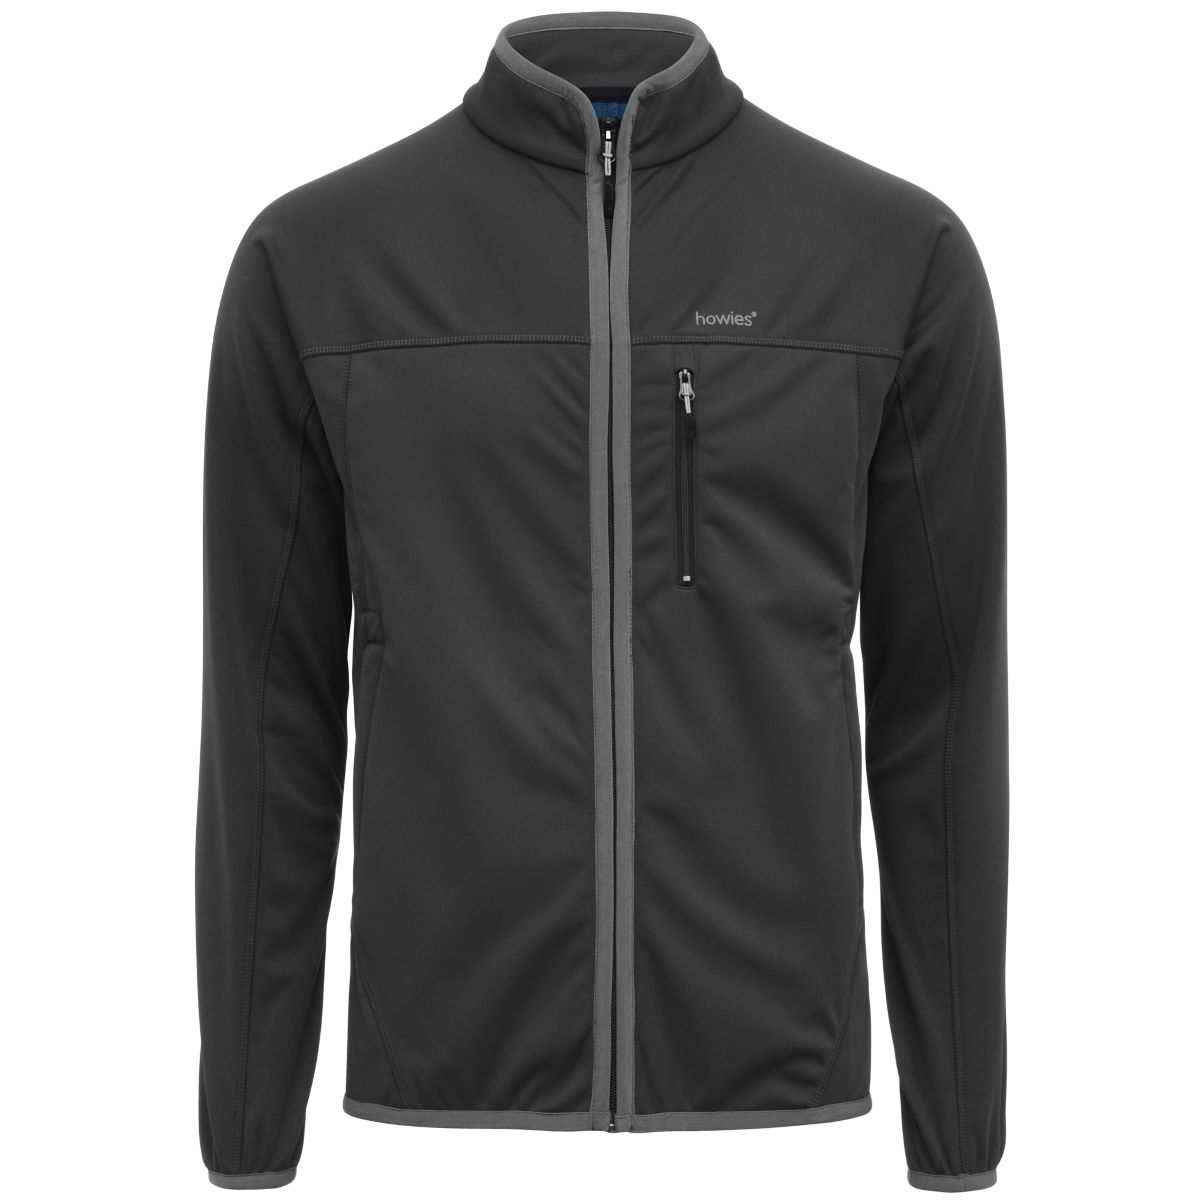 Chaqueta howies Mr Soft Softshell - Chaquetas